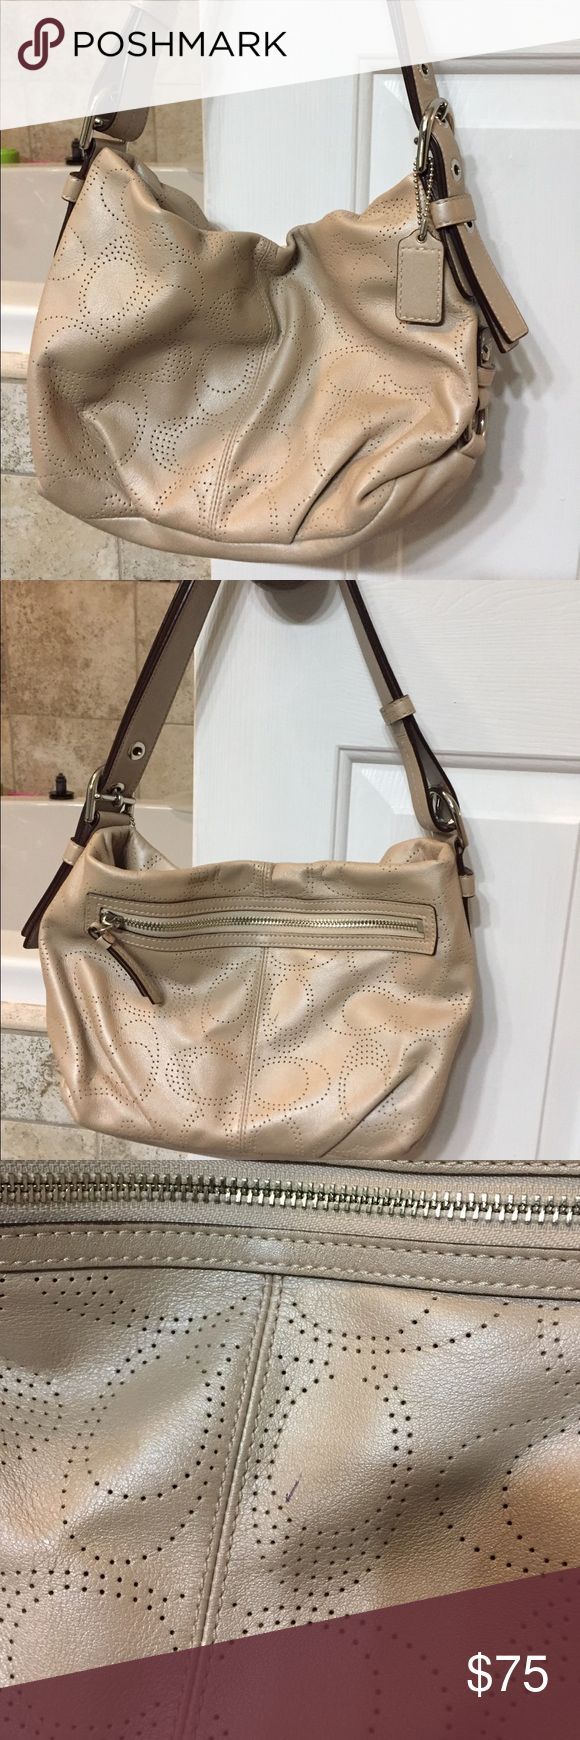 """Coach hobo bag Beautiful leather Coach hobo in excellent condition with the exception of one small pen mark that I haven't tried to remove- see close up pic for details. Tan in color with a shimmery, almost metallic hue.  Approximately 12""""Lx7""""Hx2""""W.  18""""L with handle, with adjustable strap. Coach Bags Hobos"""